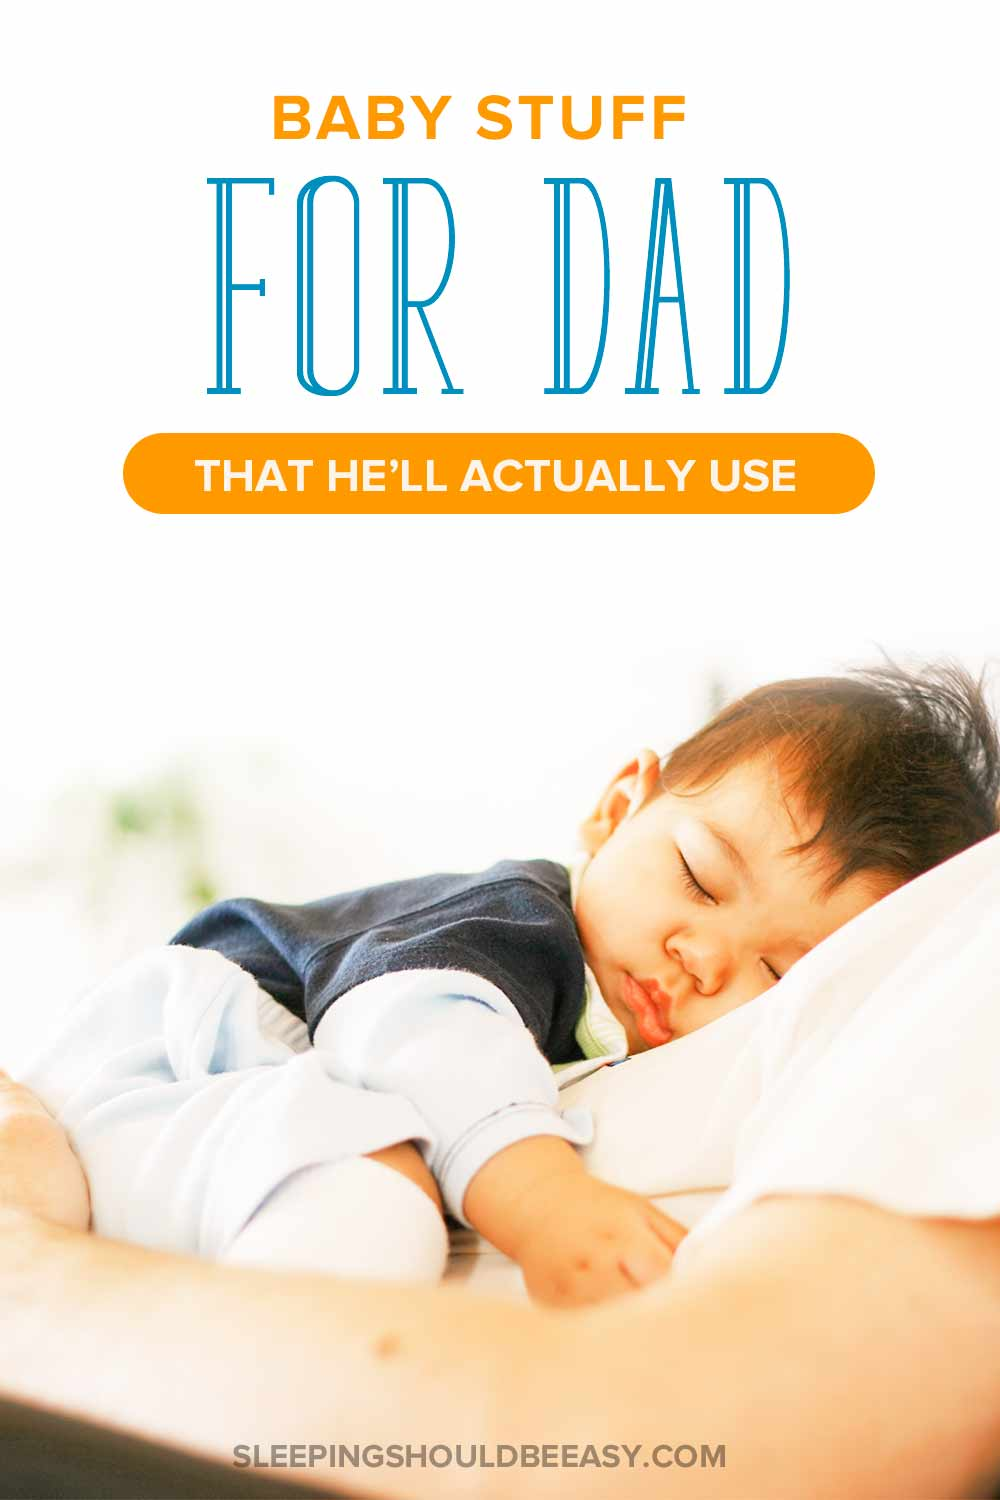 Looking for #baby stuff for dads he'll actually use? Manly baby gear can make for awesome registry items or newborn #dad accessories. I collected my top dad baby products for you to pick from. Take a look at the new dad must haves and gadgets every father is sure to love. #dadlife